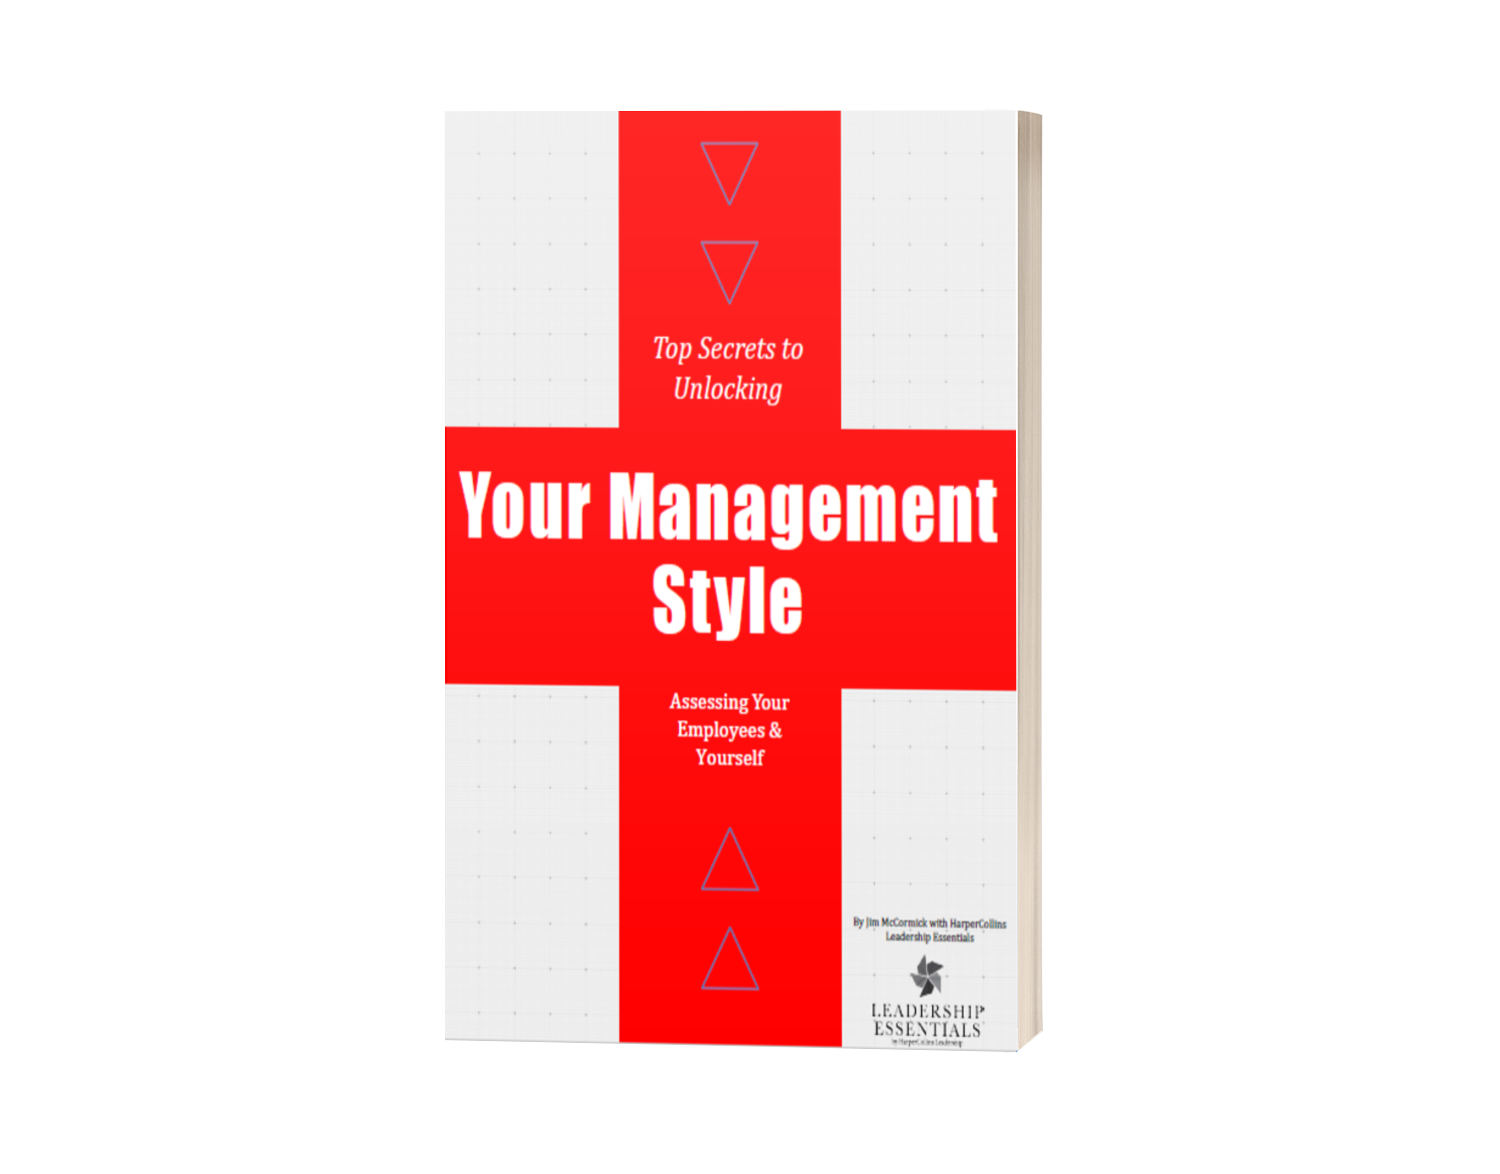 top secrets to unlocking your management style